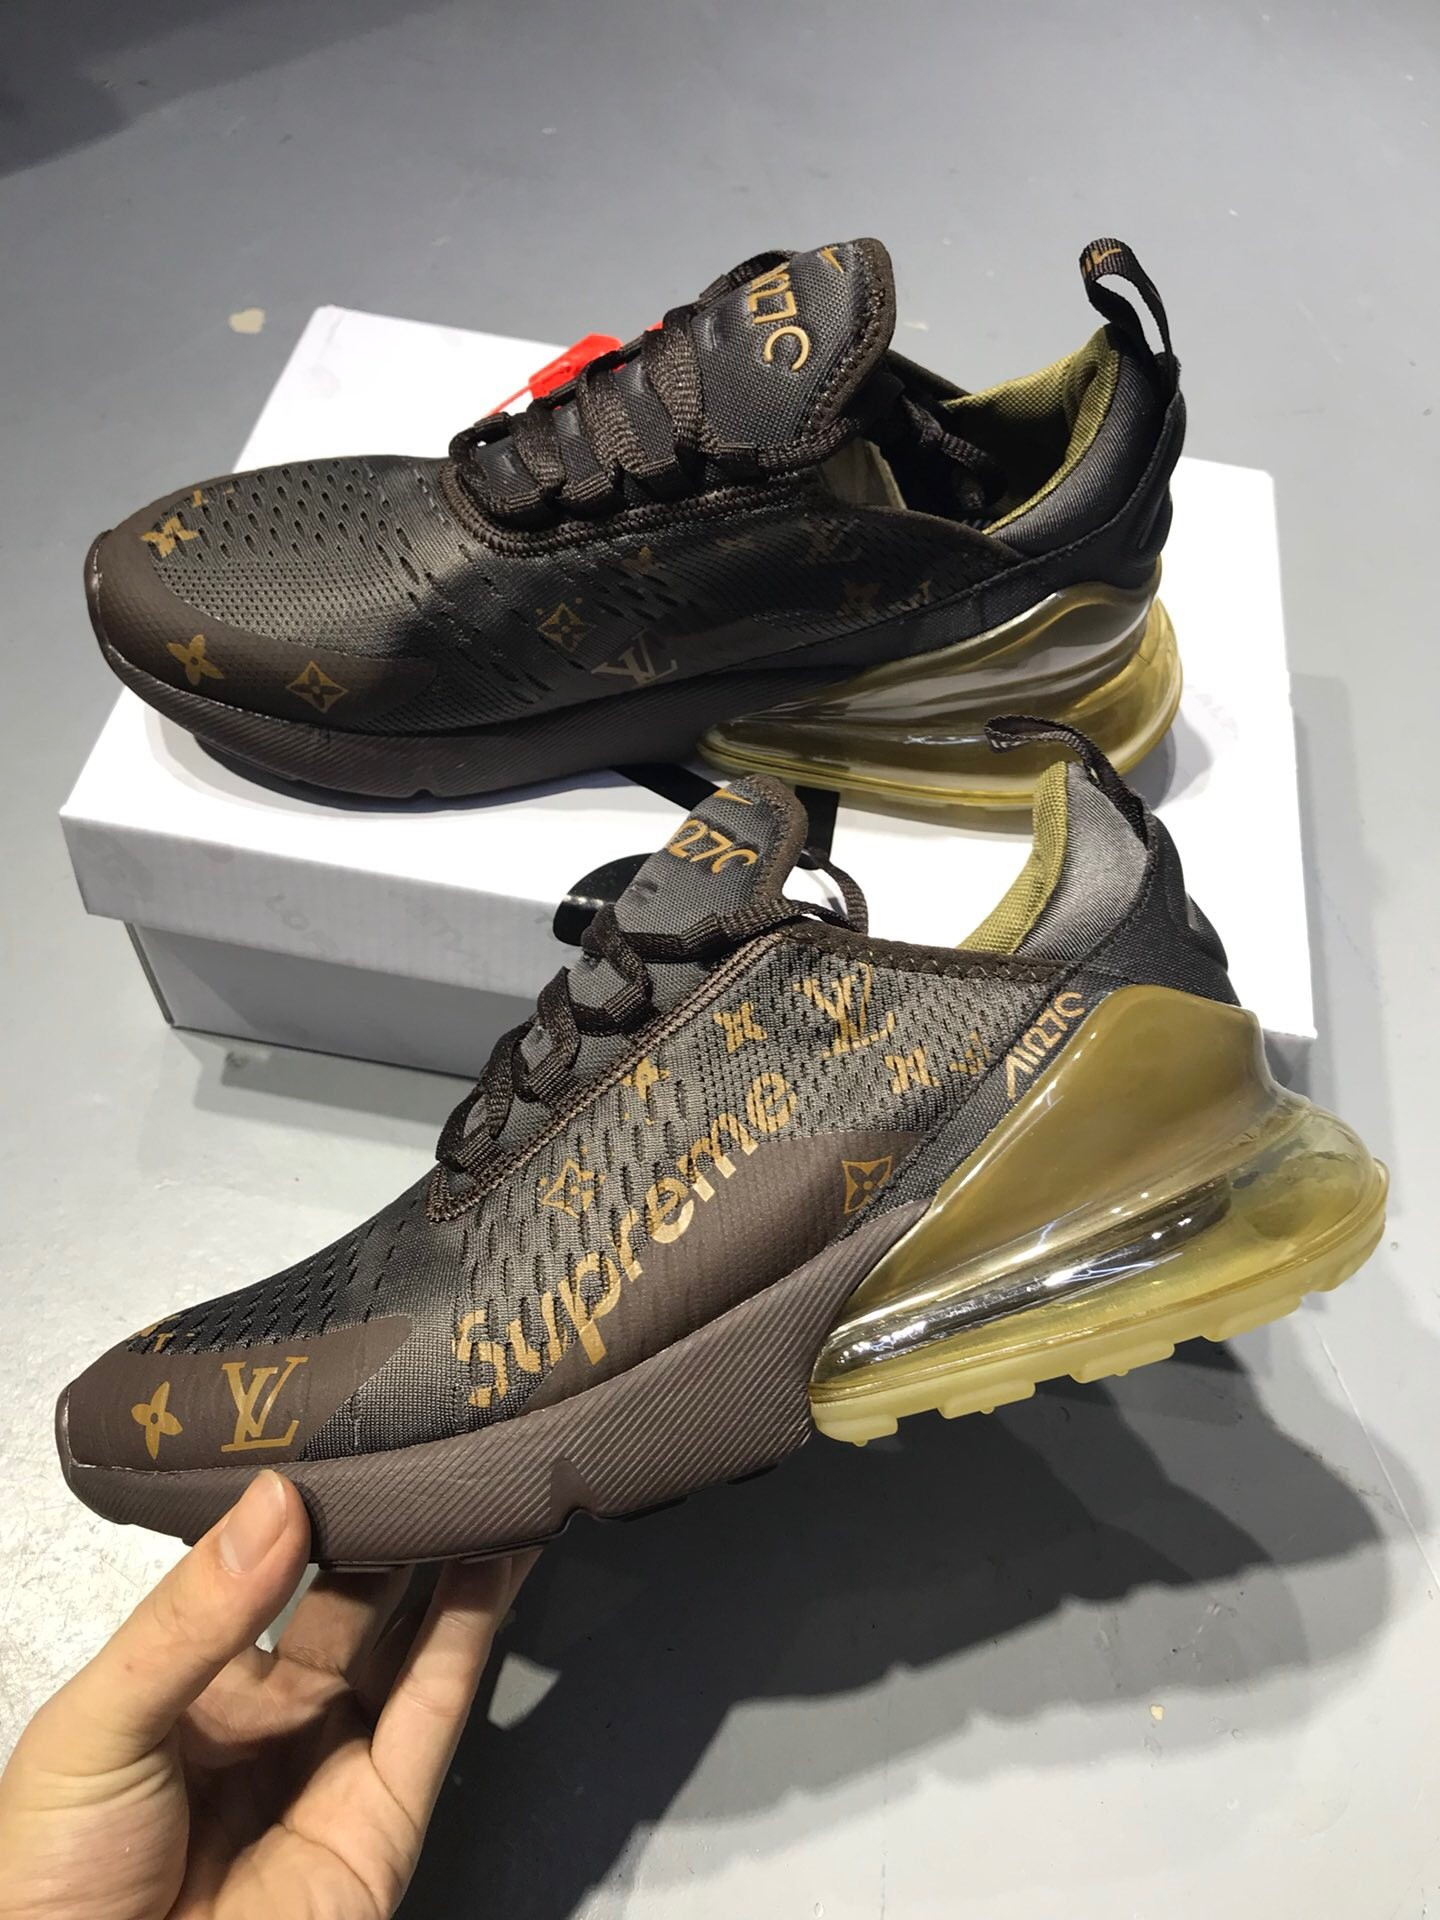 LV X Nike Air Max270 Yellow Jogging Shoes